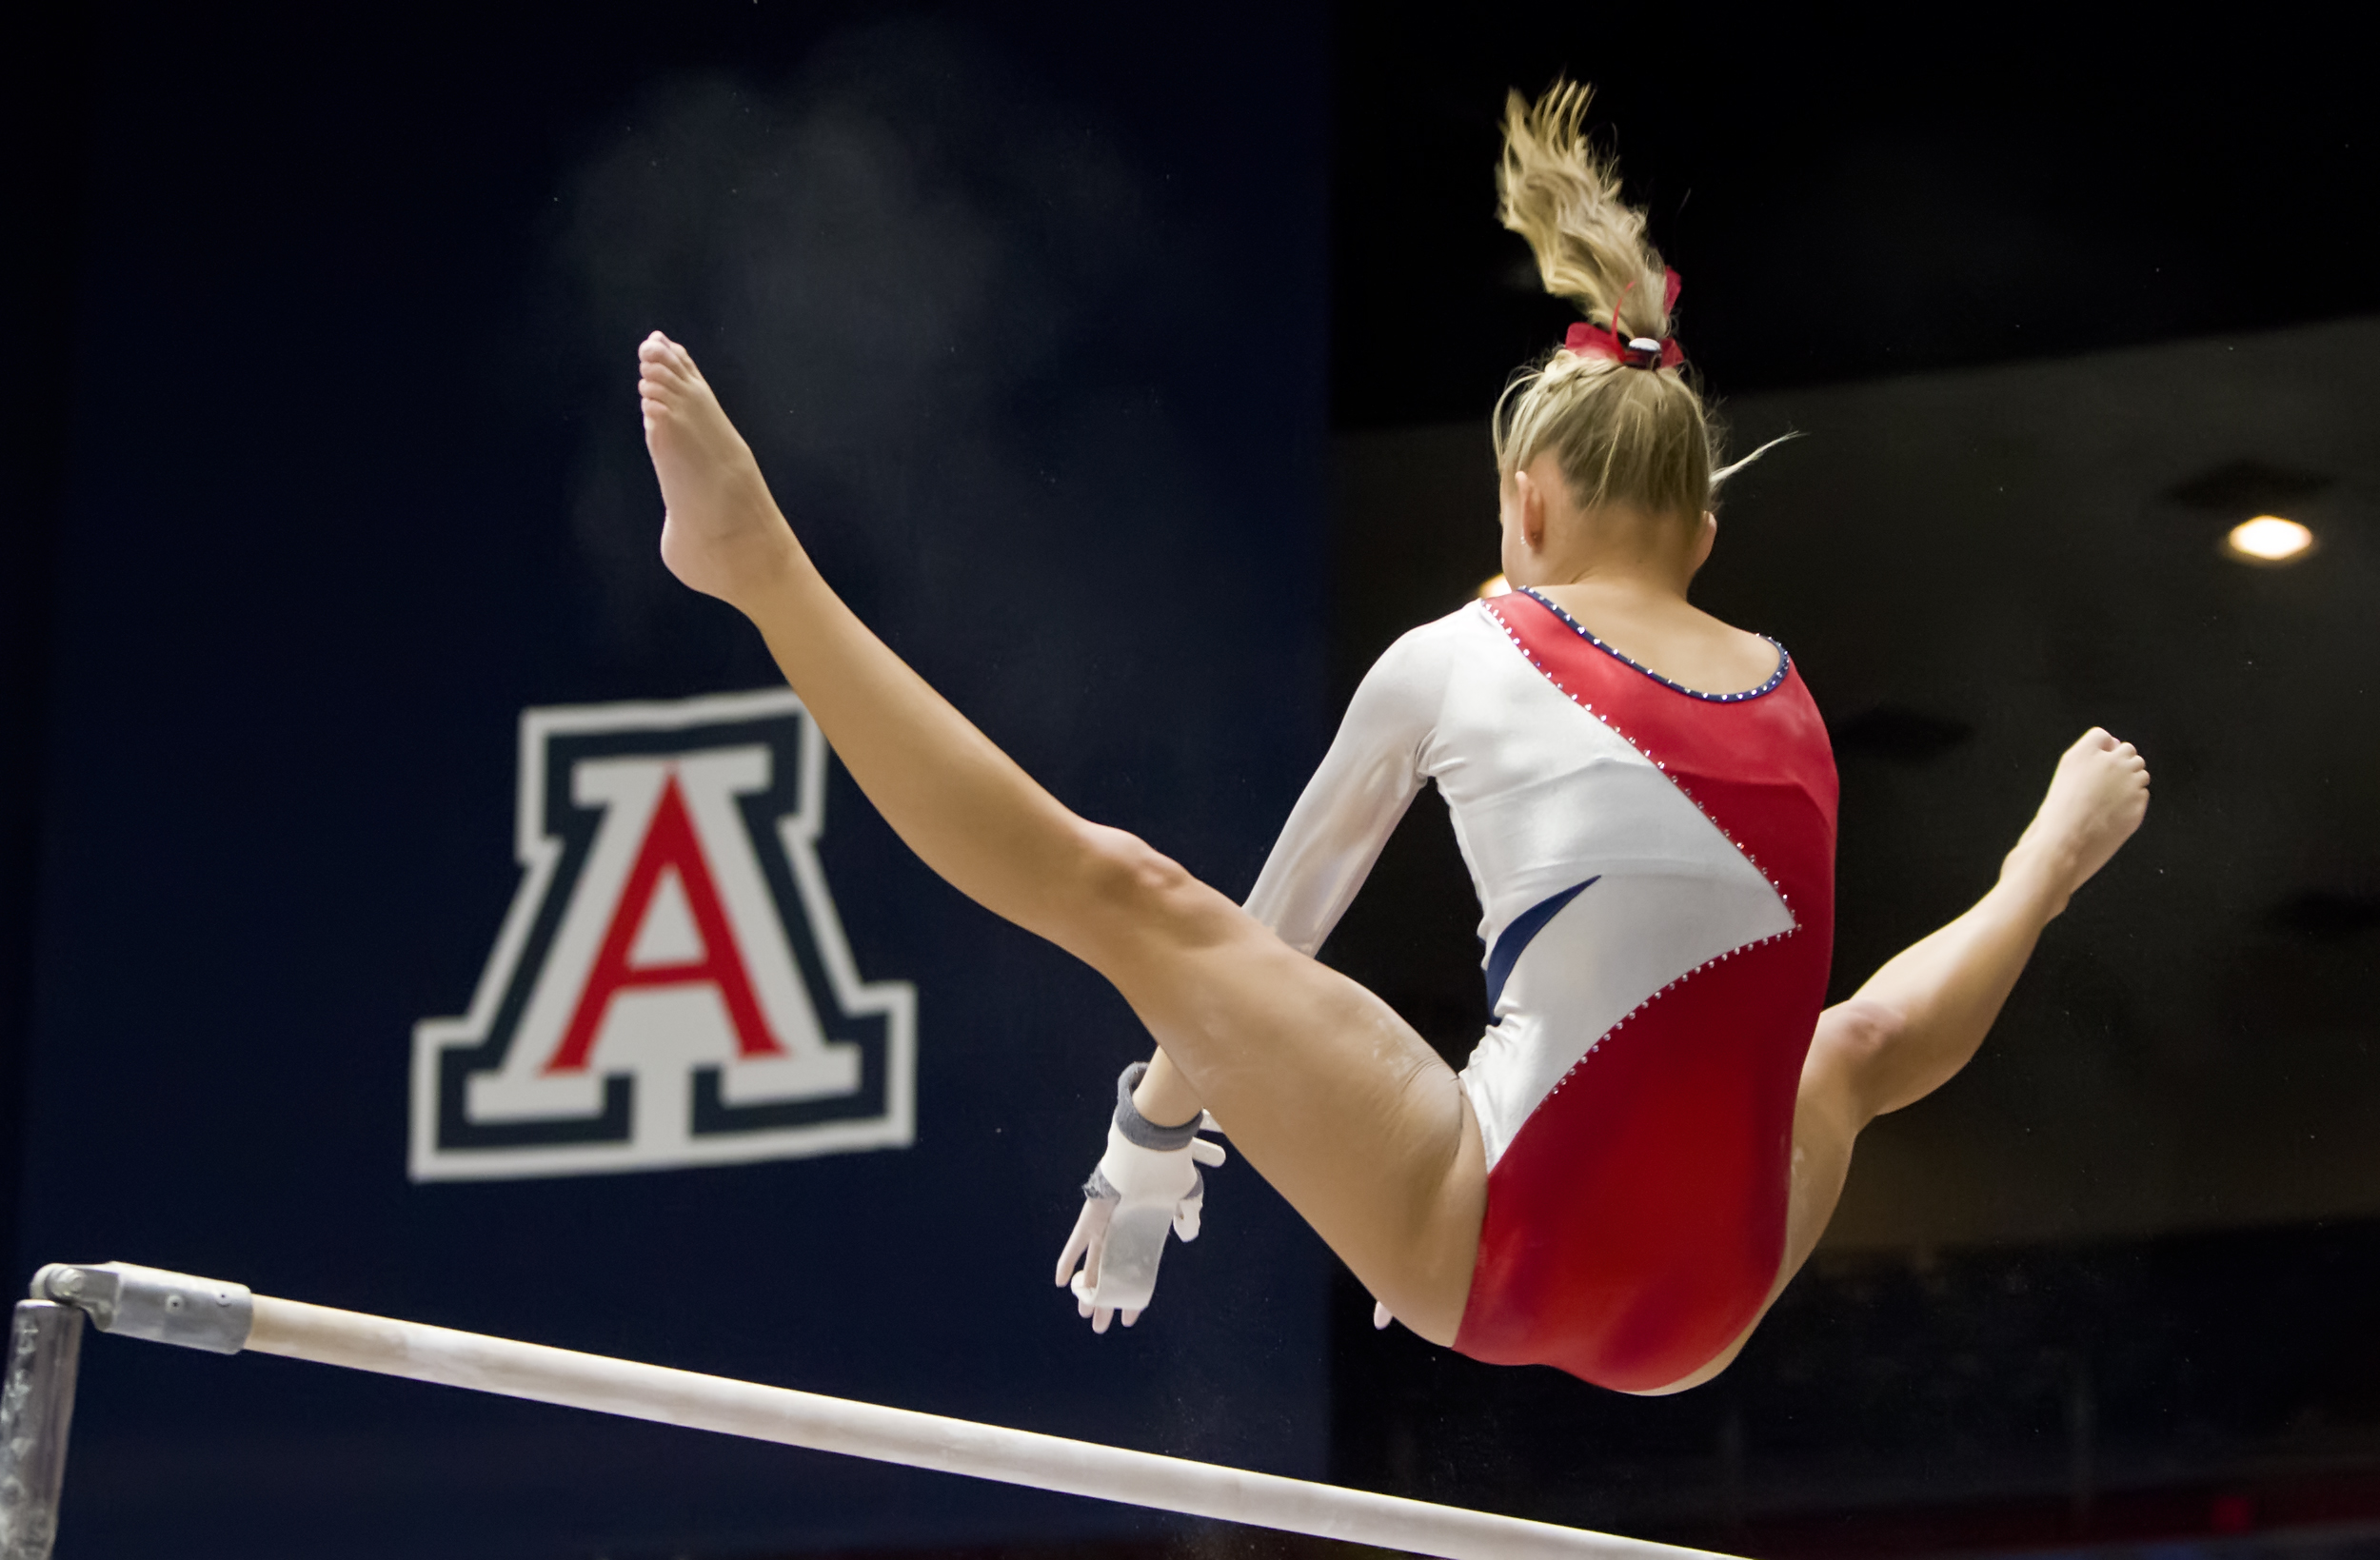 Buchanan-danielle-ua-gymnastics-vs-multi-gb-011213-35